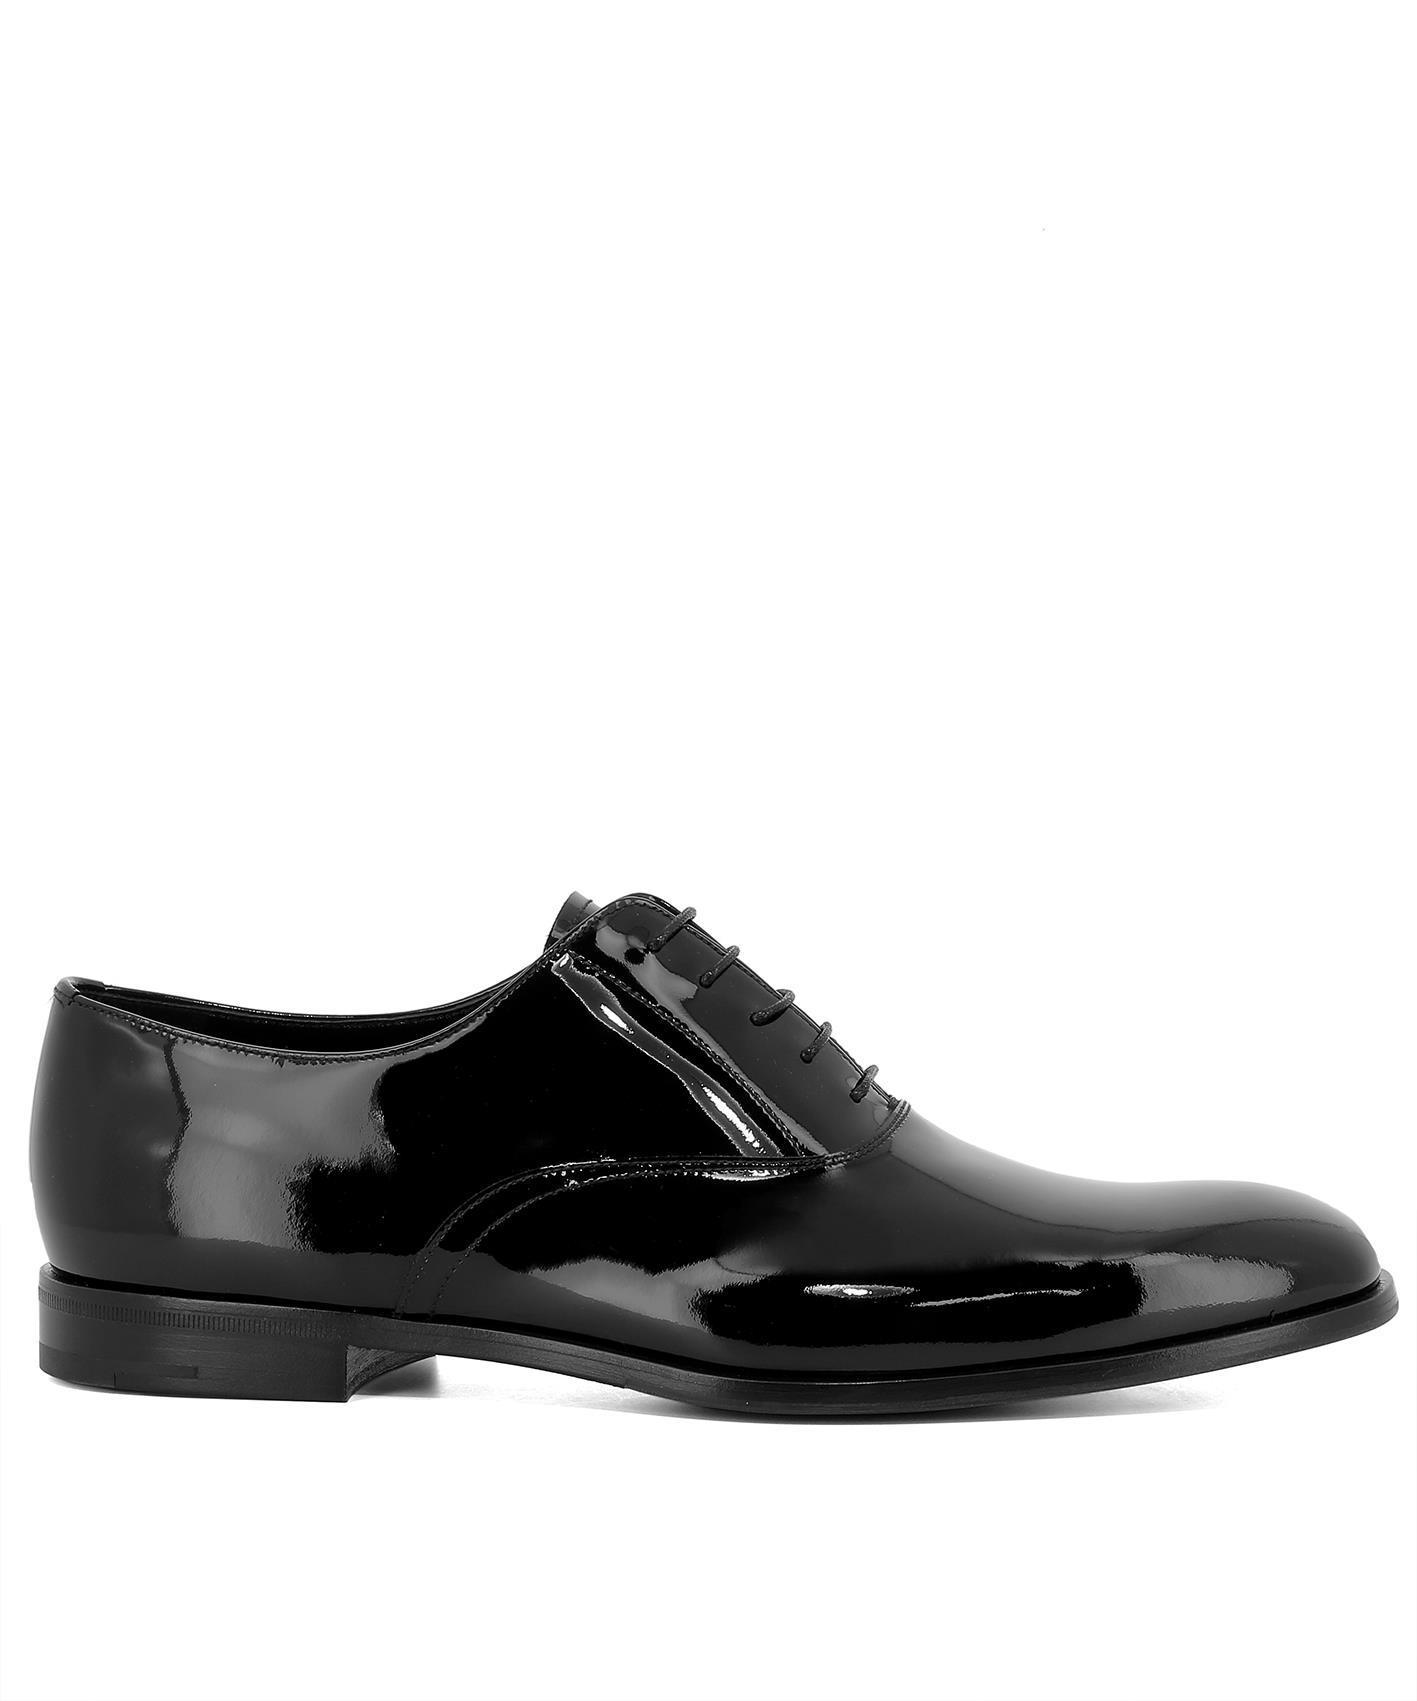 outlet store 0c4d2 7a7e2 prada-Black-Lace-up-Oxford-Shoes.jpeg